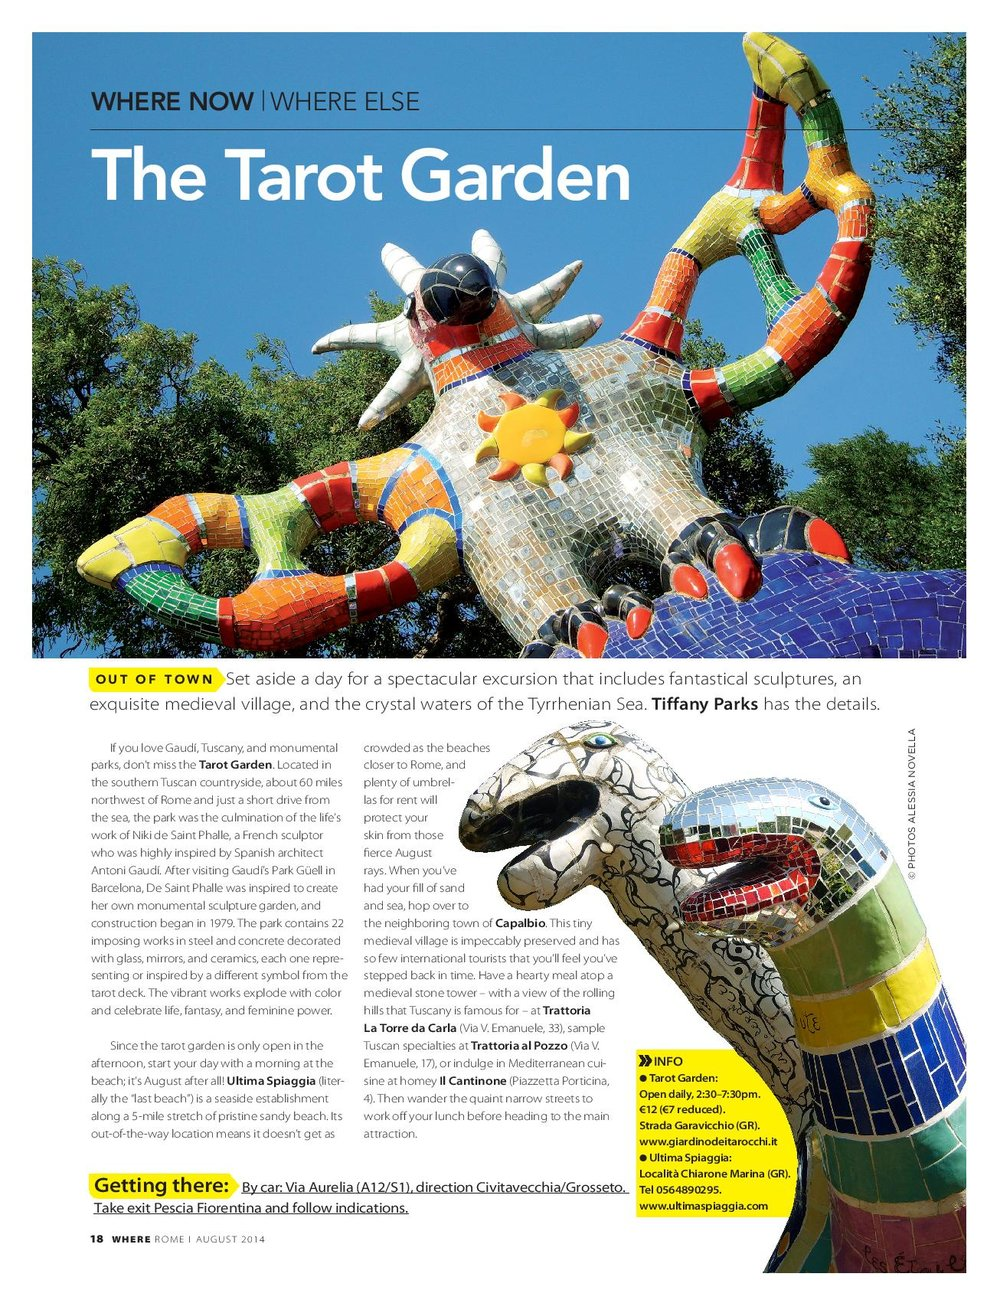 WhereElse - Tarot Garden, August 2014-page-001.jpg